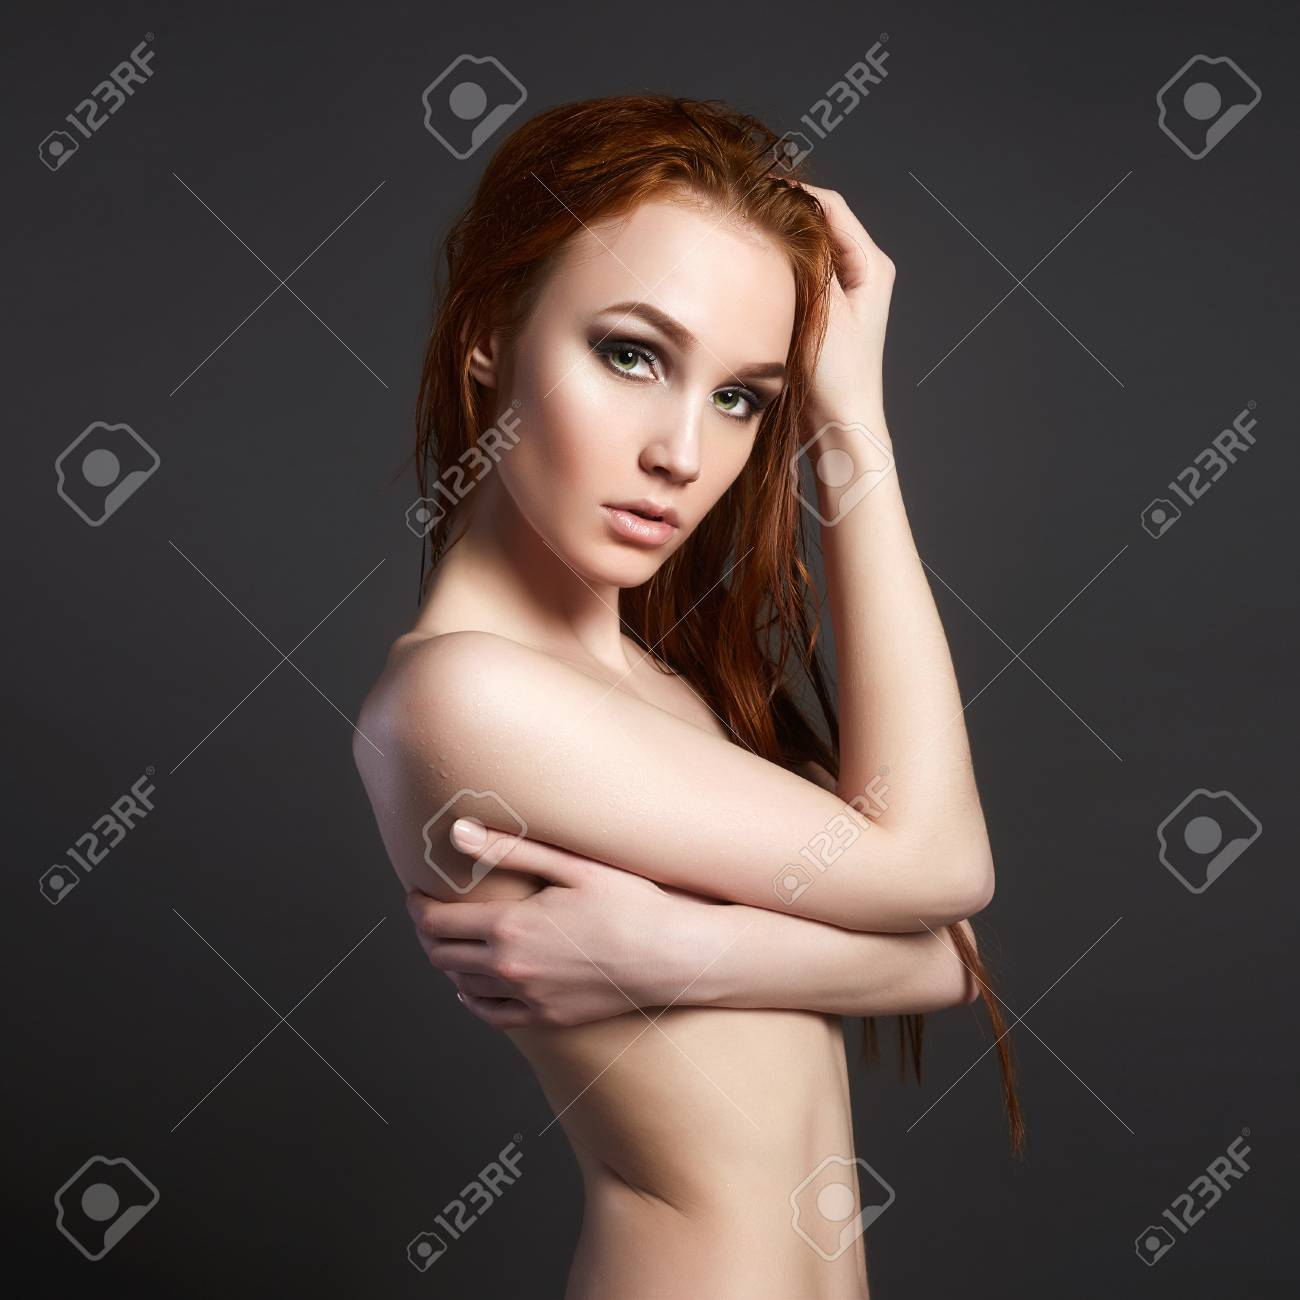 Red hair girl nude photo 2